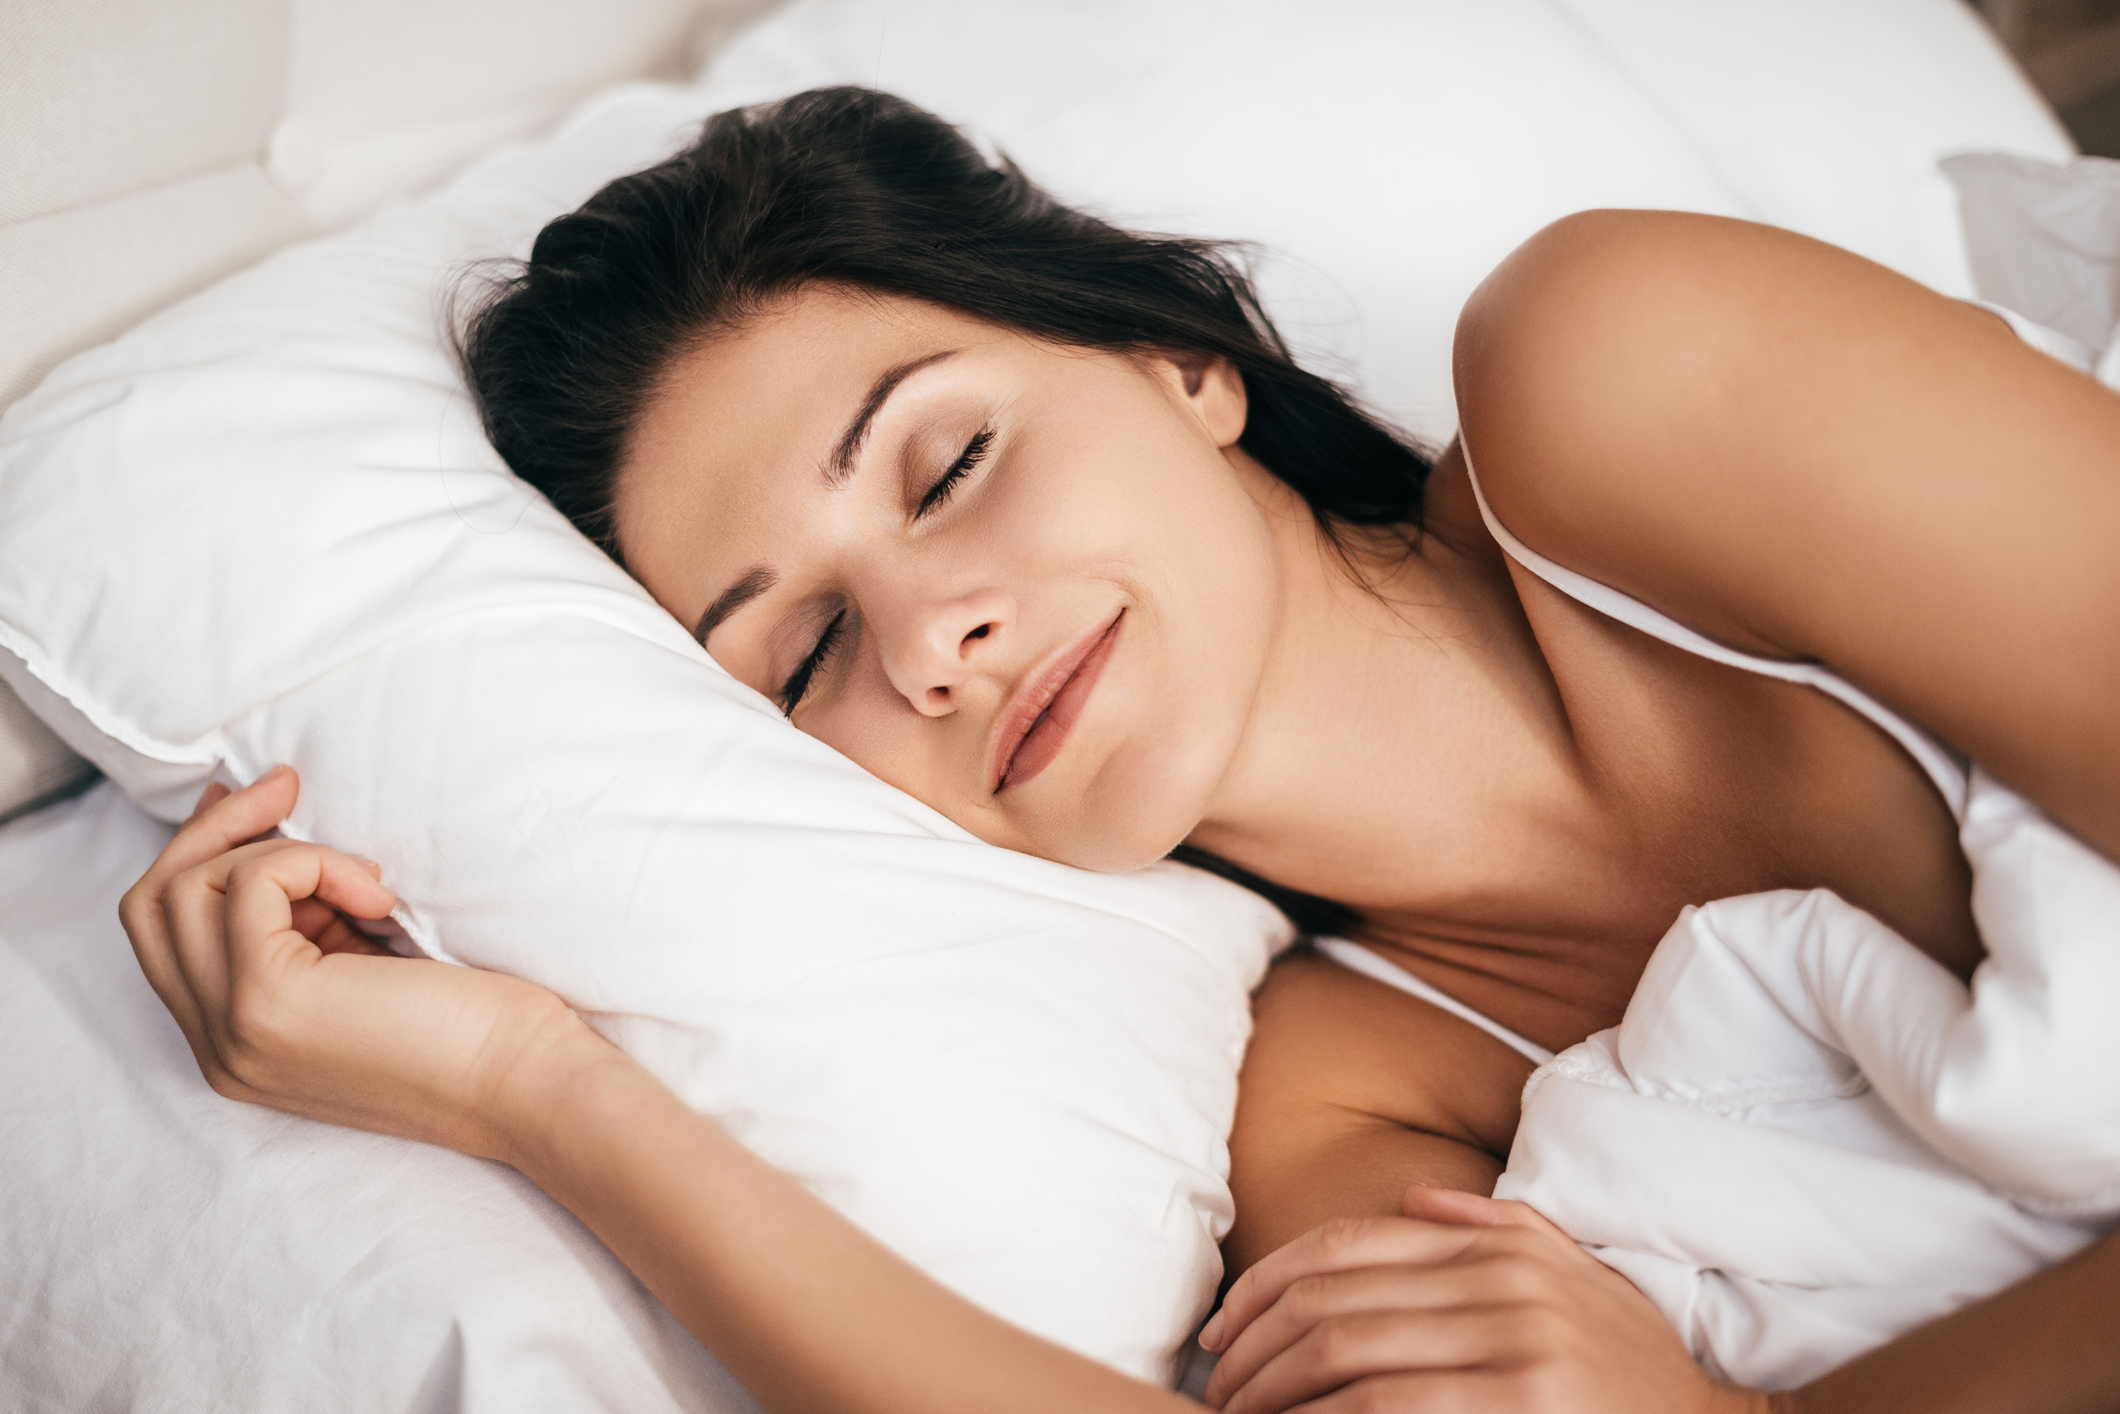 young woman sleeping (Thinkstock/PA)